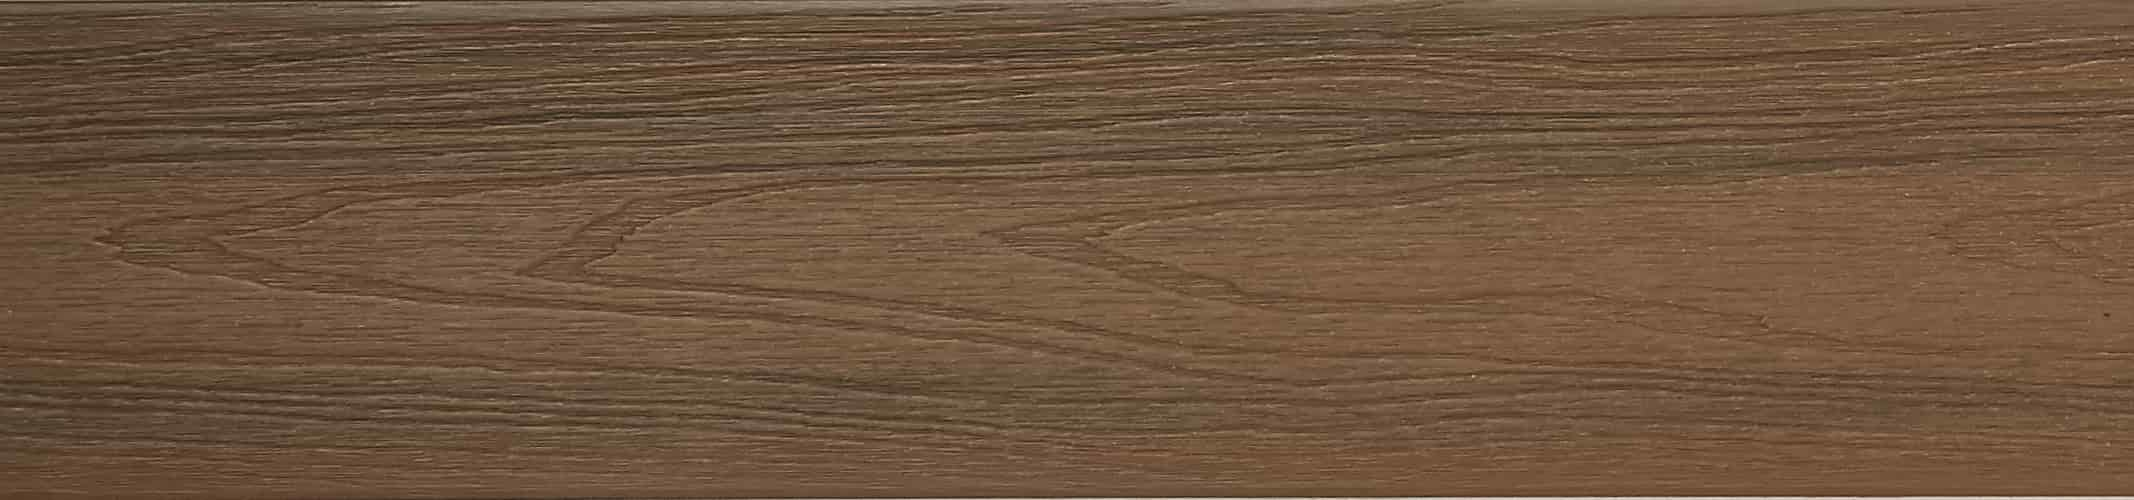 FRONTIER - Slate | HYPERION Solid Composite Decking Board